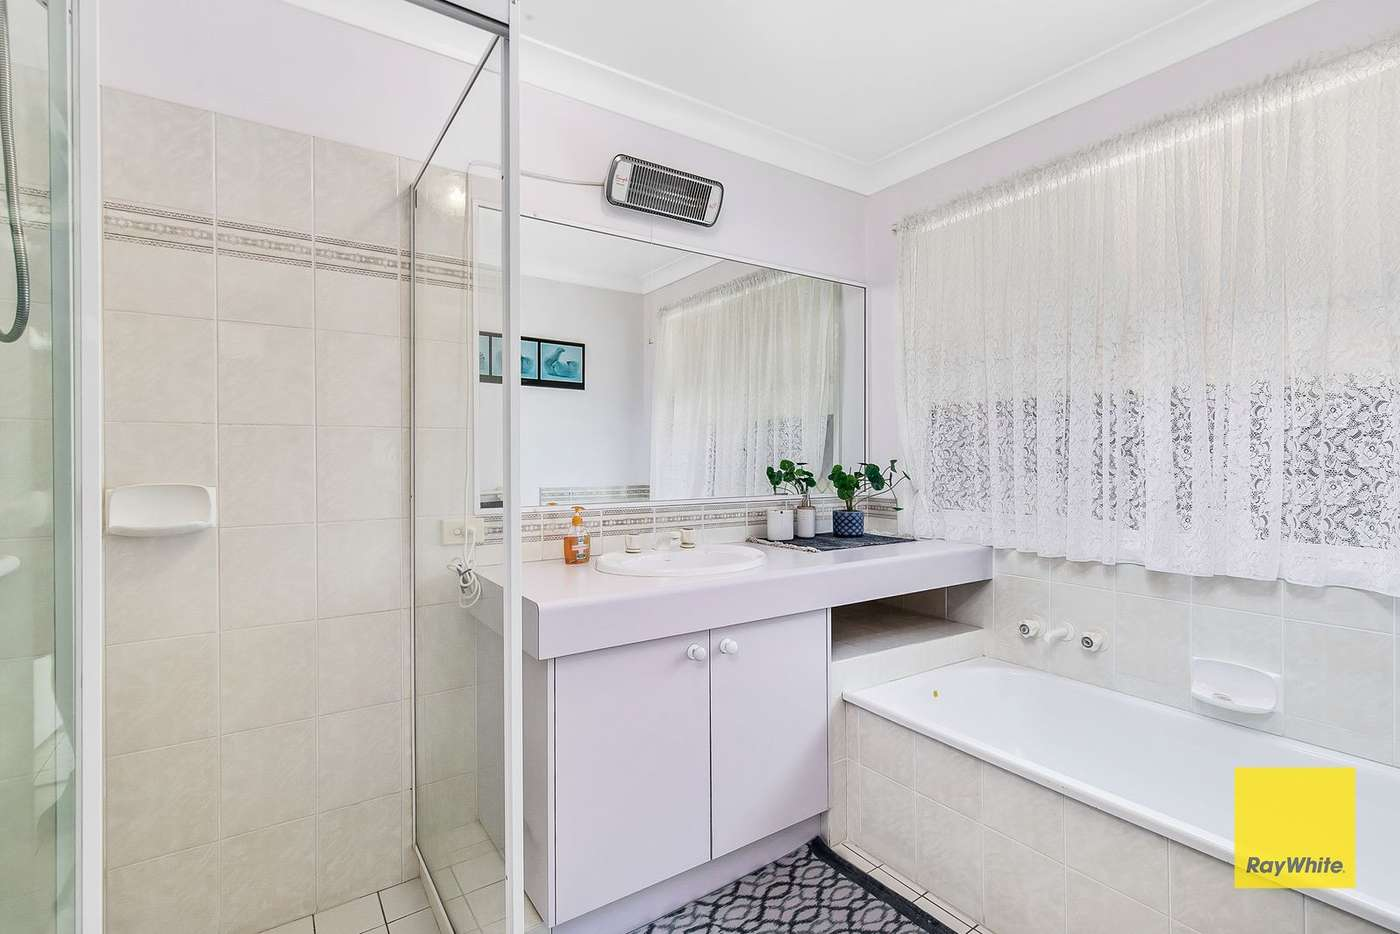 Fifth view of Homely house listing, 3 Thorne Road, Birkdale QLD 4159